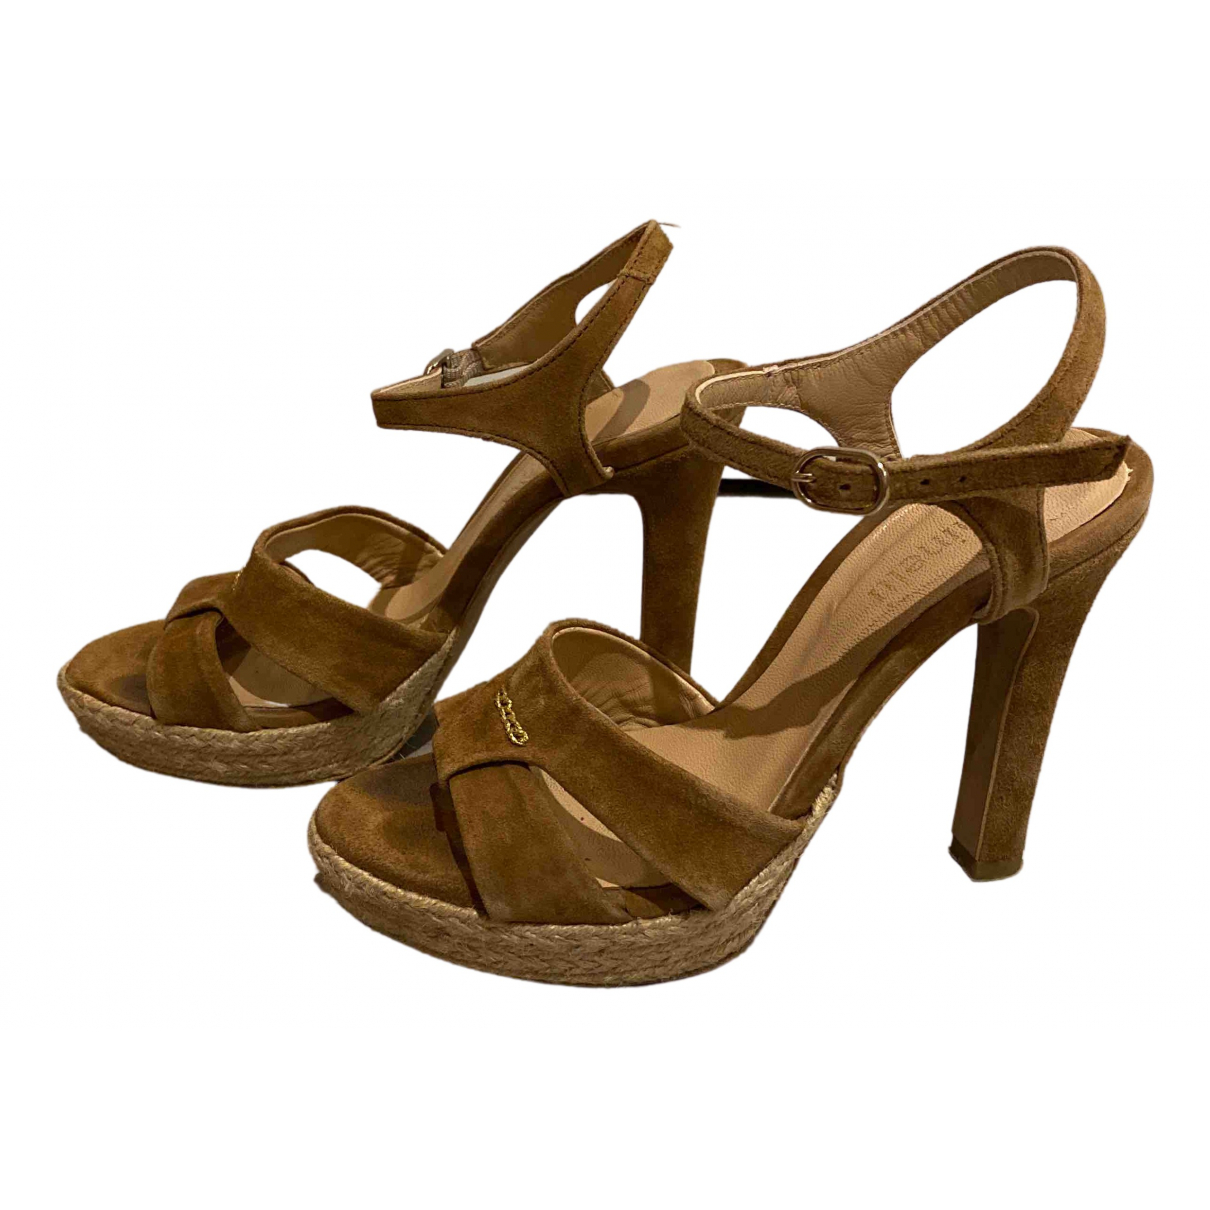 Minelli N Brown Suede Sandals for Women 36 EU